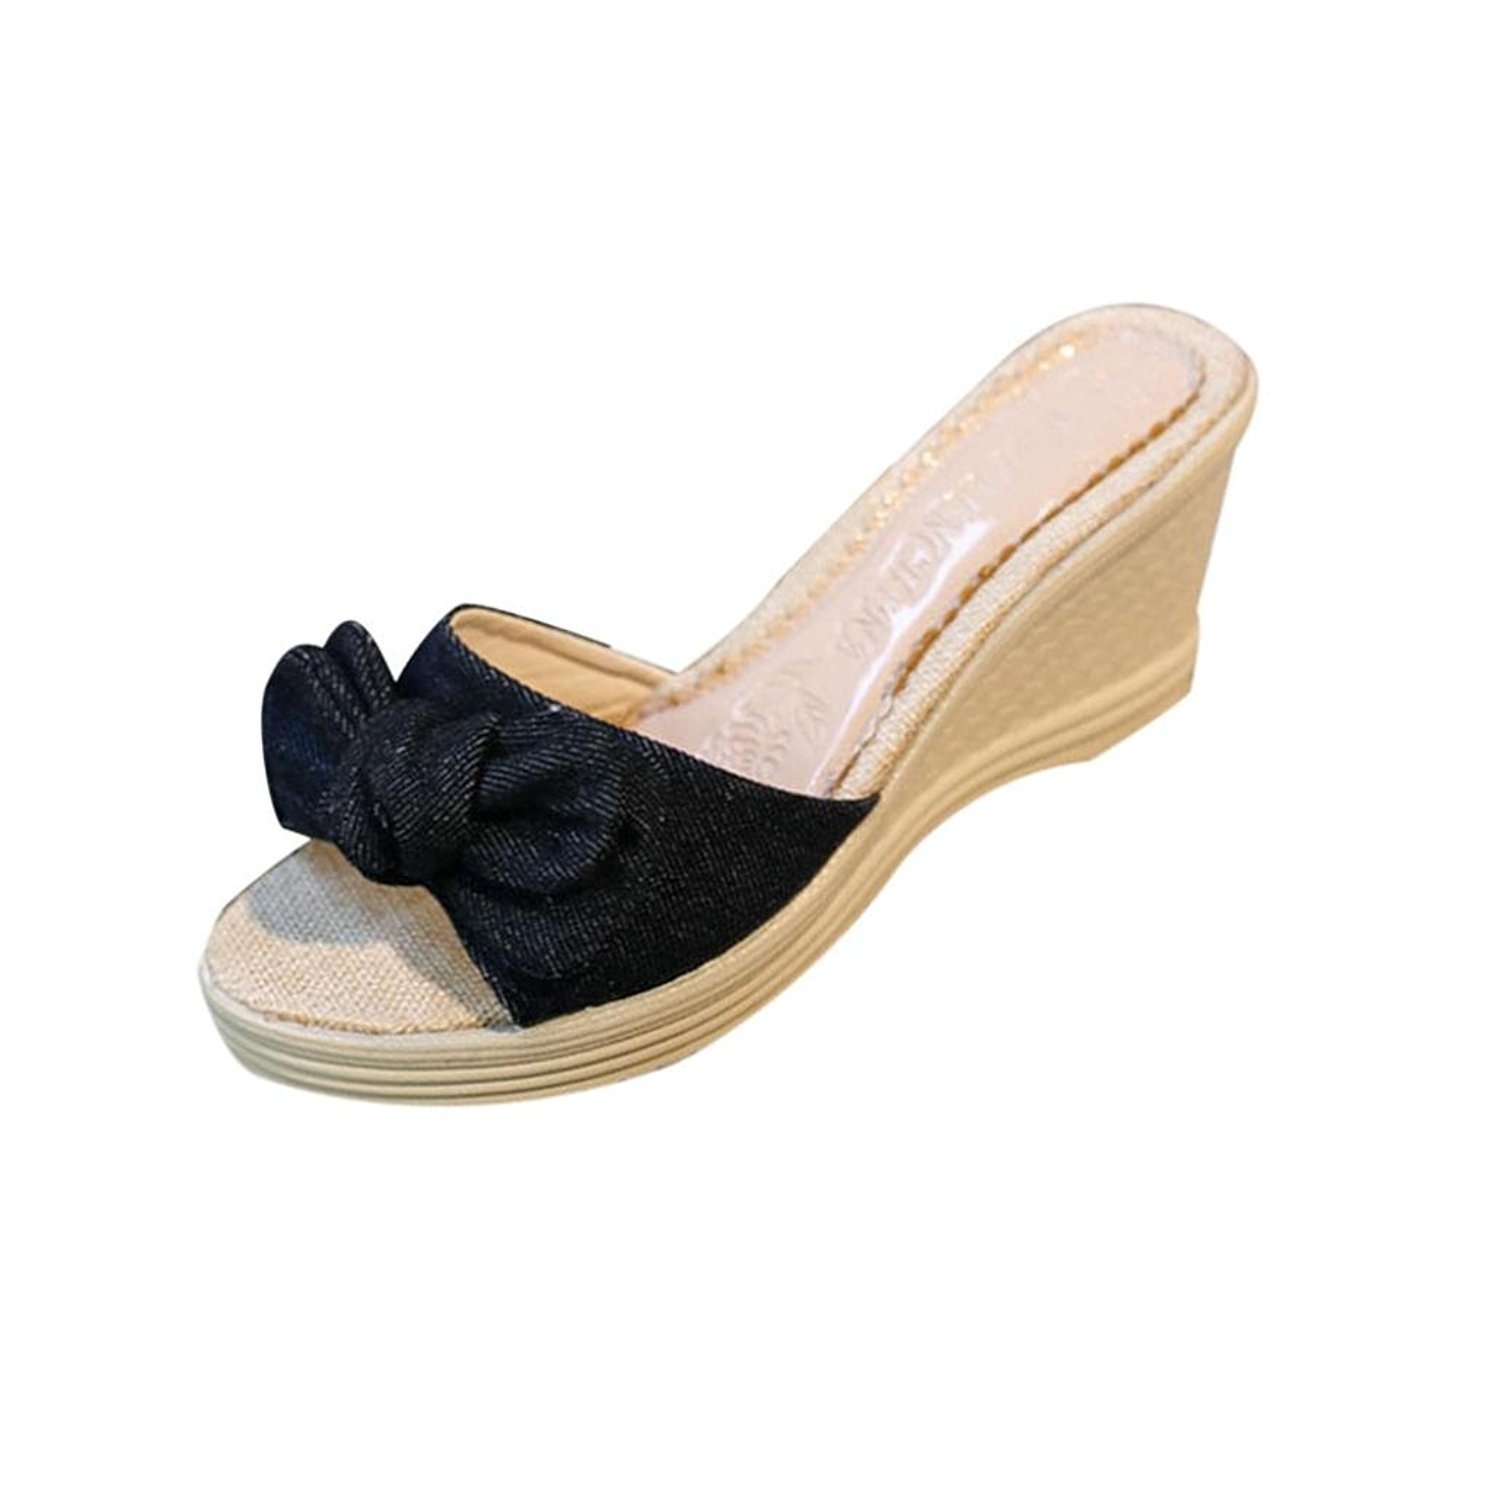 03071a926e88 Get Quotations · Sikye Slippers Open Toe Bowknot Slippers For Women Outdoor  Indoor Hight Wedge Heel Slippers